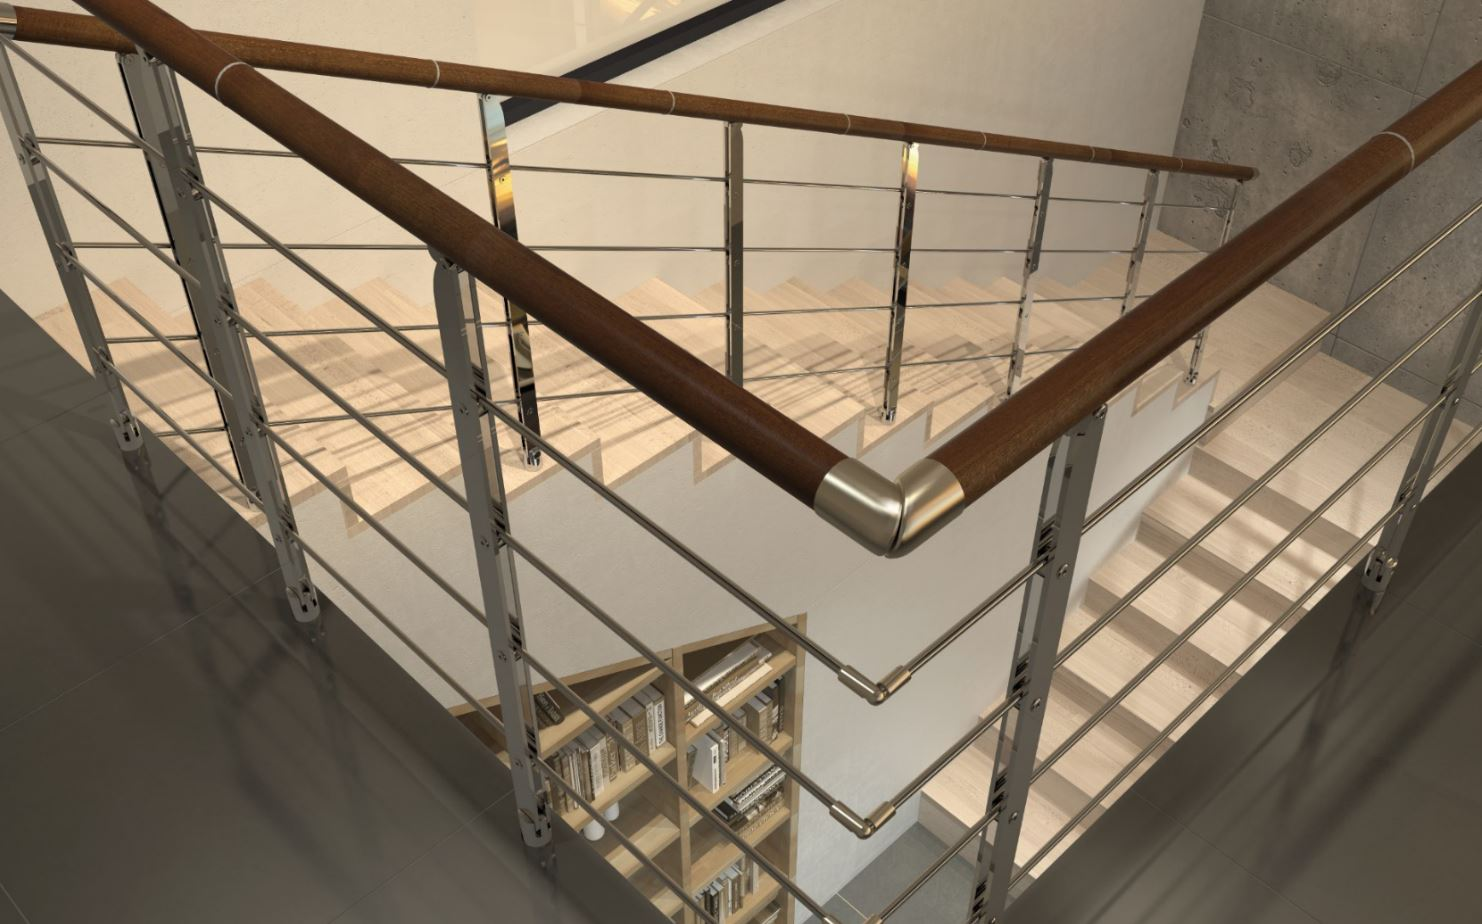 Modern Railing Systems in wood, cable wire, stainless